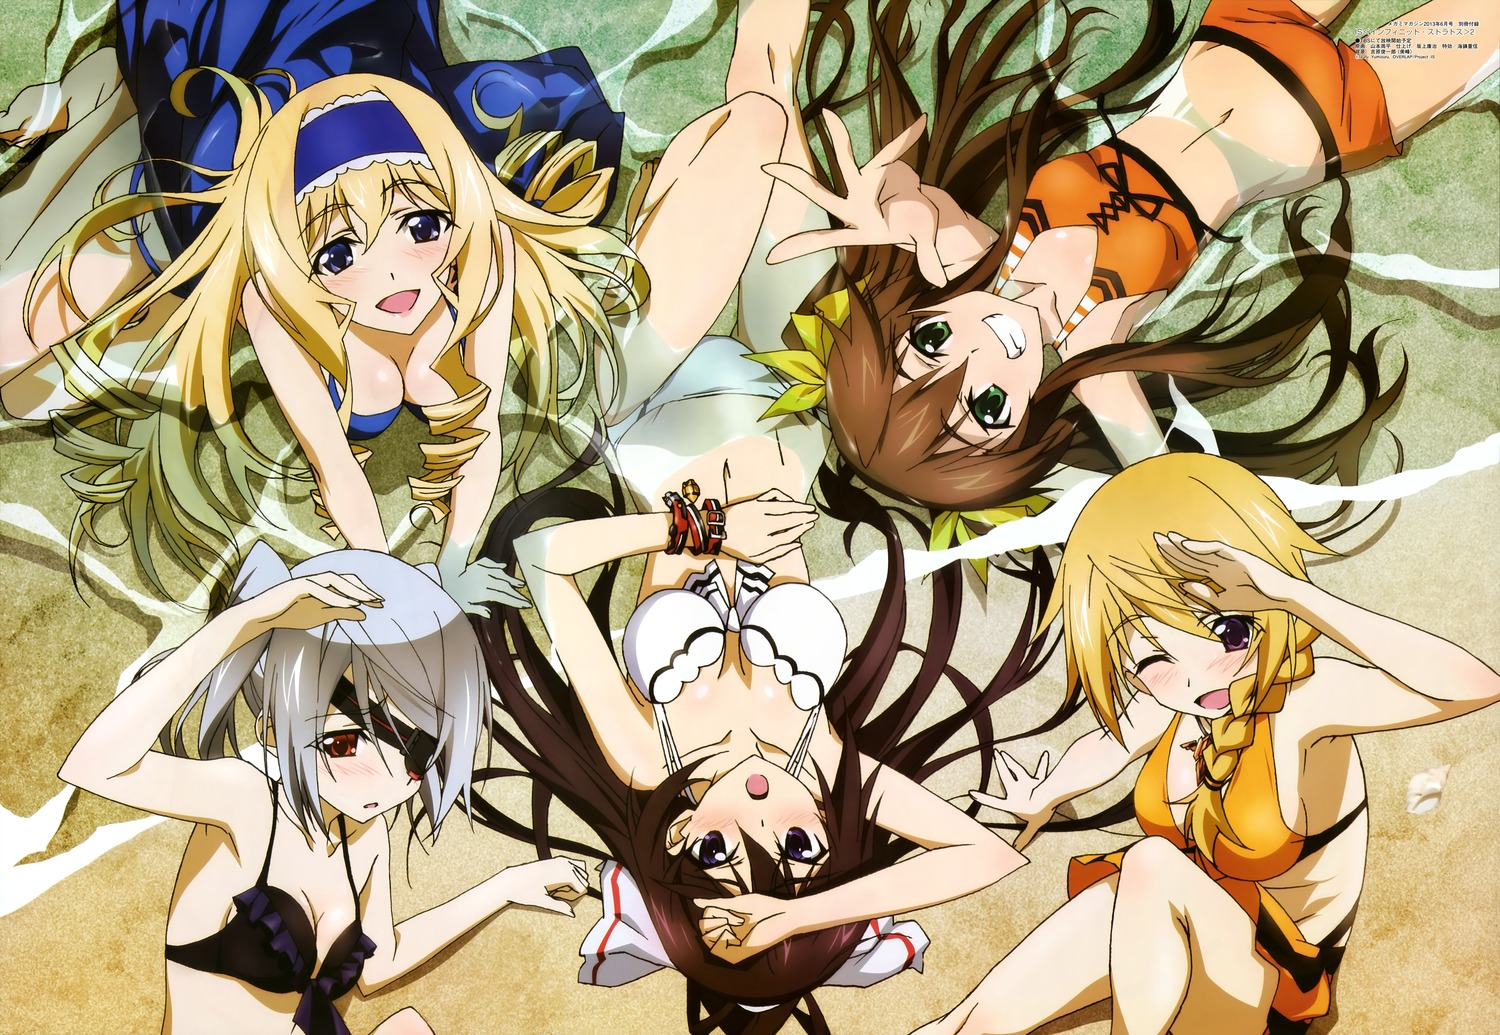 nyantype, megami, анимешные плакаты, аниме 2013, сиськи, жопы, панцу, Infinite Stratos,Magical Girl Lyrical Nanoha,Photo Kano,Nyarko-san: Another Crawling Chaos,yakka Ryouran: Samurai Bride,Steins;Gate Fuka Ryouiki no Deja vu,Mushibugyou,Dansai Bunri no Crime Edge,Miyakawa-Ke No Kuufuku,Lucky Star,Aiura,Aura: Maryuuinkouga Saigo no Tatakai,To Aru Kagaku no Railgun S,Mahou Shoujo Madoka Magica the Movie Part I: The Beginning Story,Yahari Ore no Seishun Love Come wa Machigatteiru.